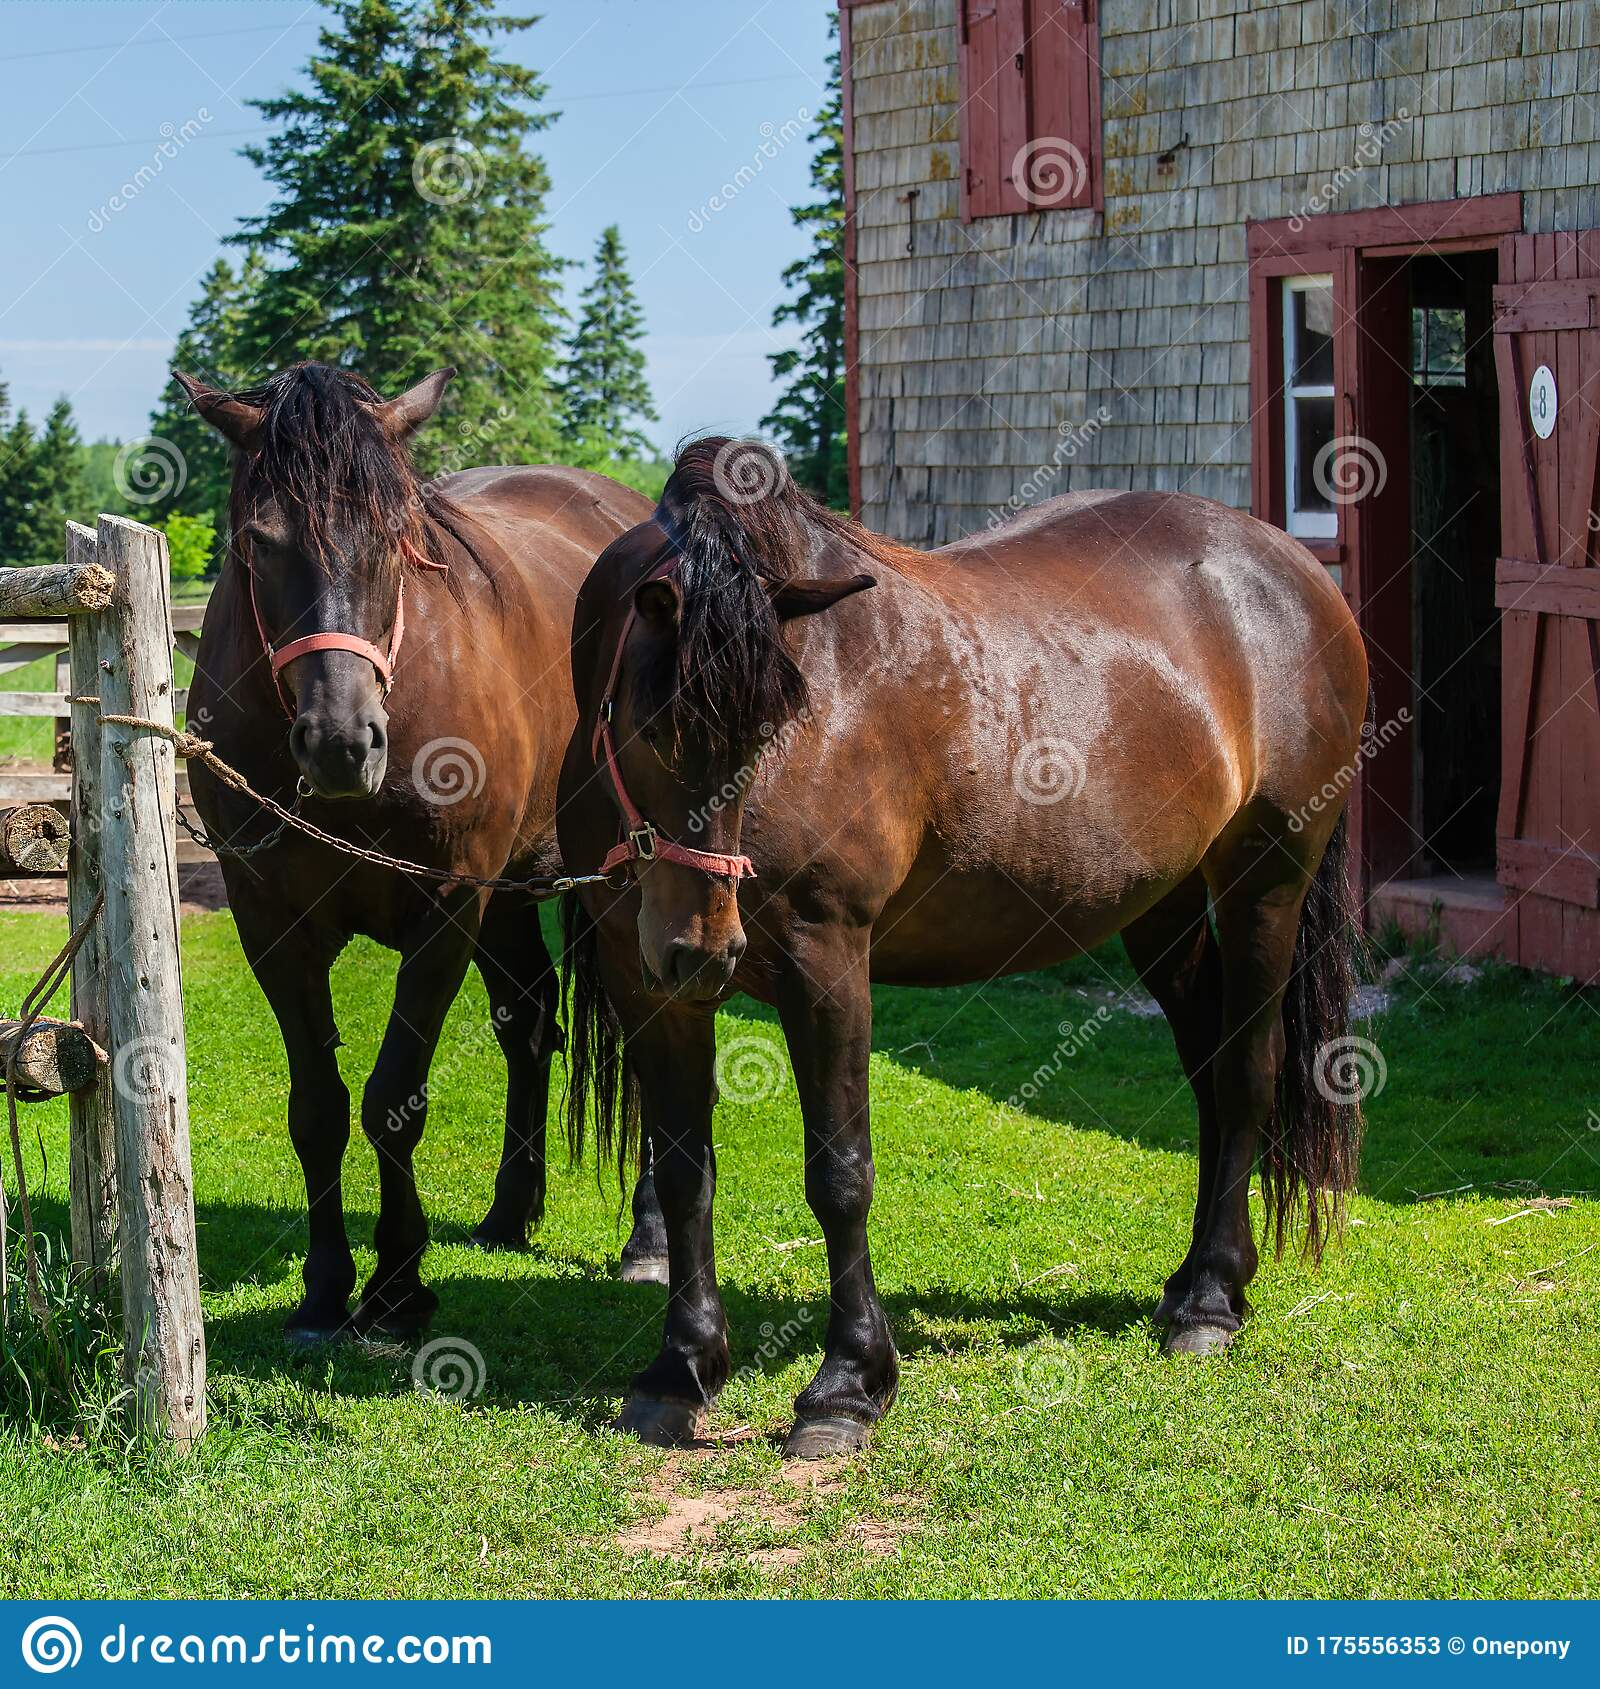 108 Canadian Horse Breed Photos Free Royalty Free Stock Photos From Dreamstime